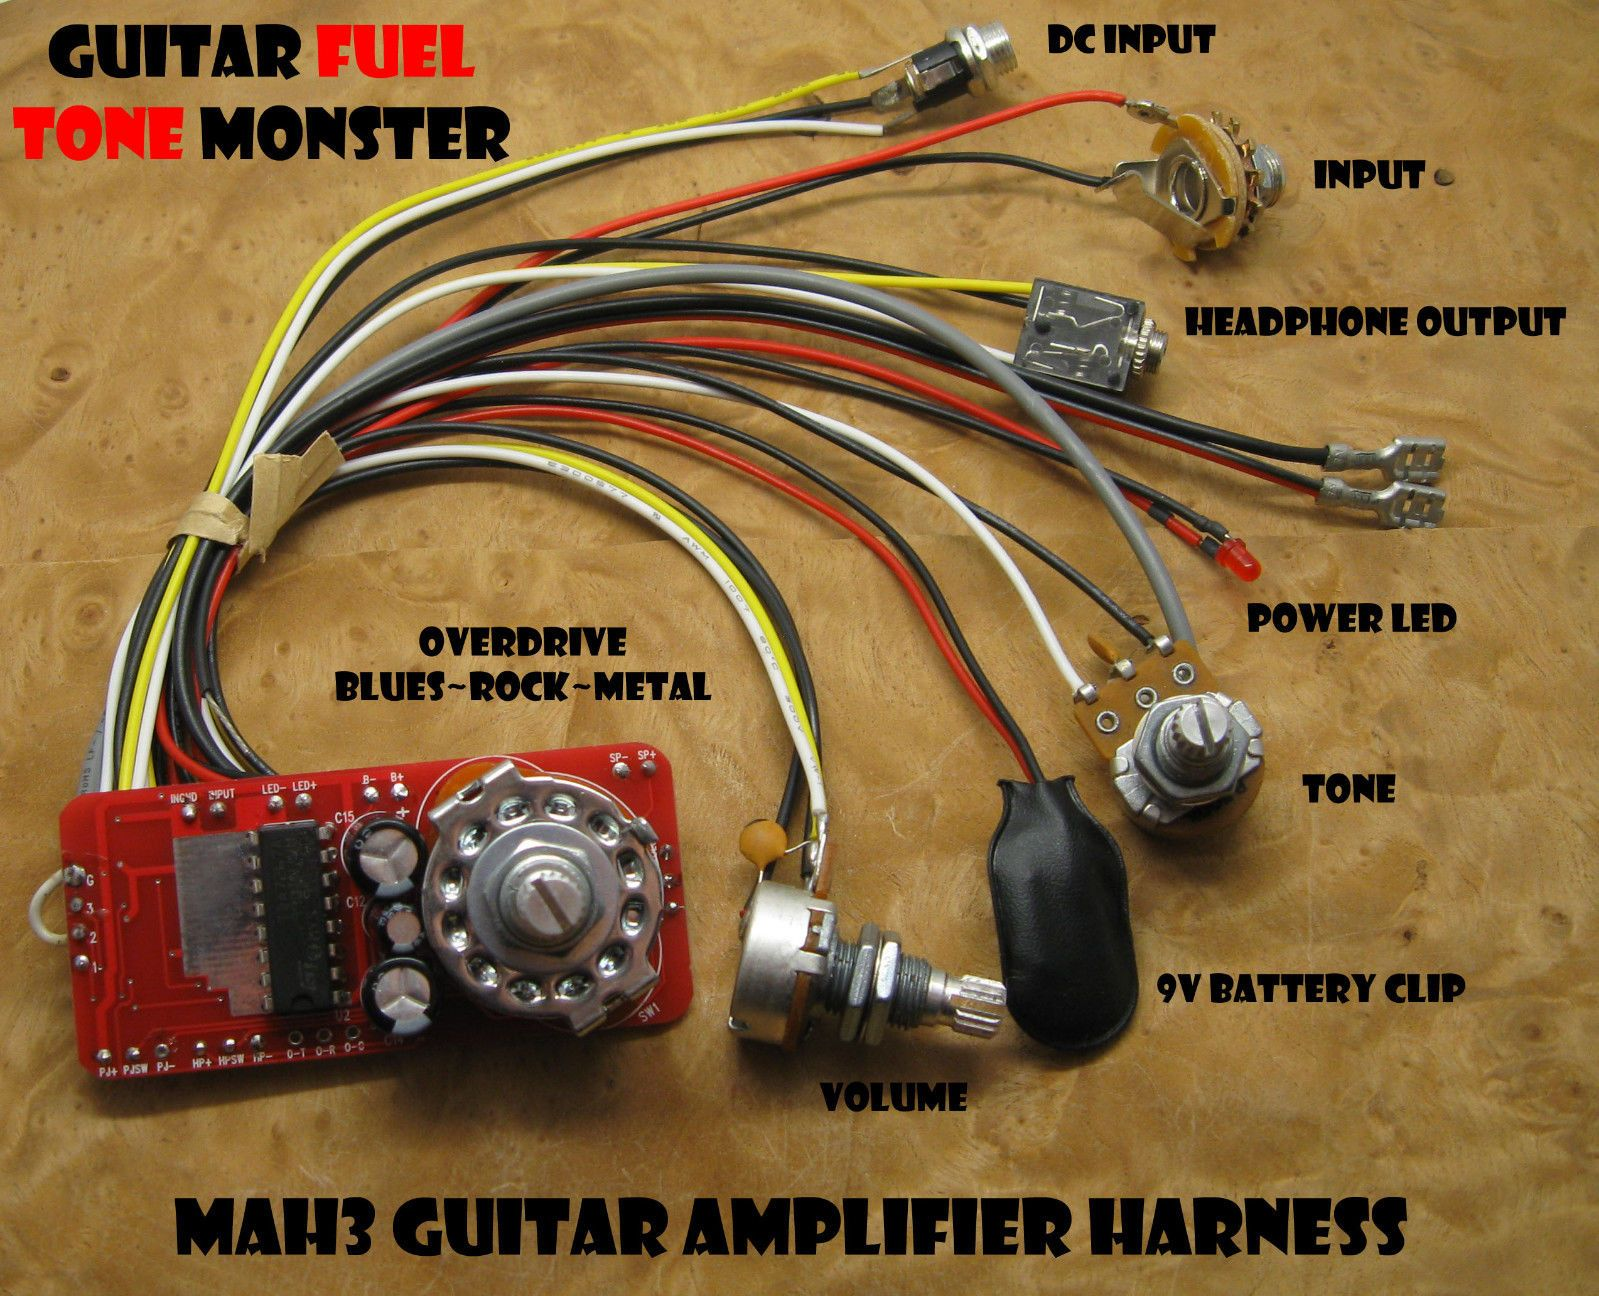 tone monster mah3 guitar amp kit 3w volume tone overdrive hdph 4 rh pinterest com